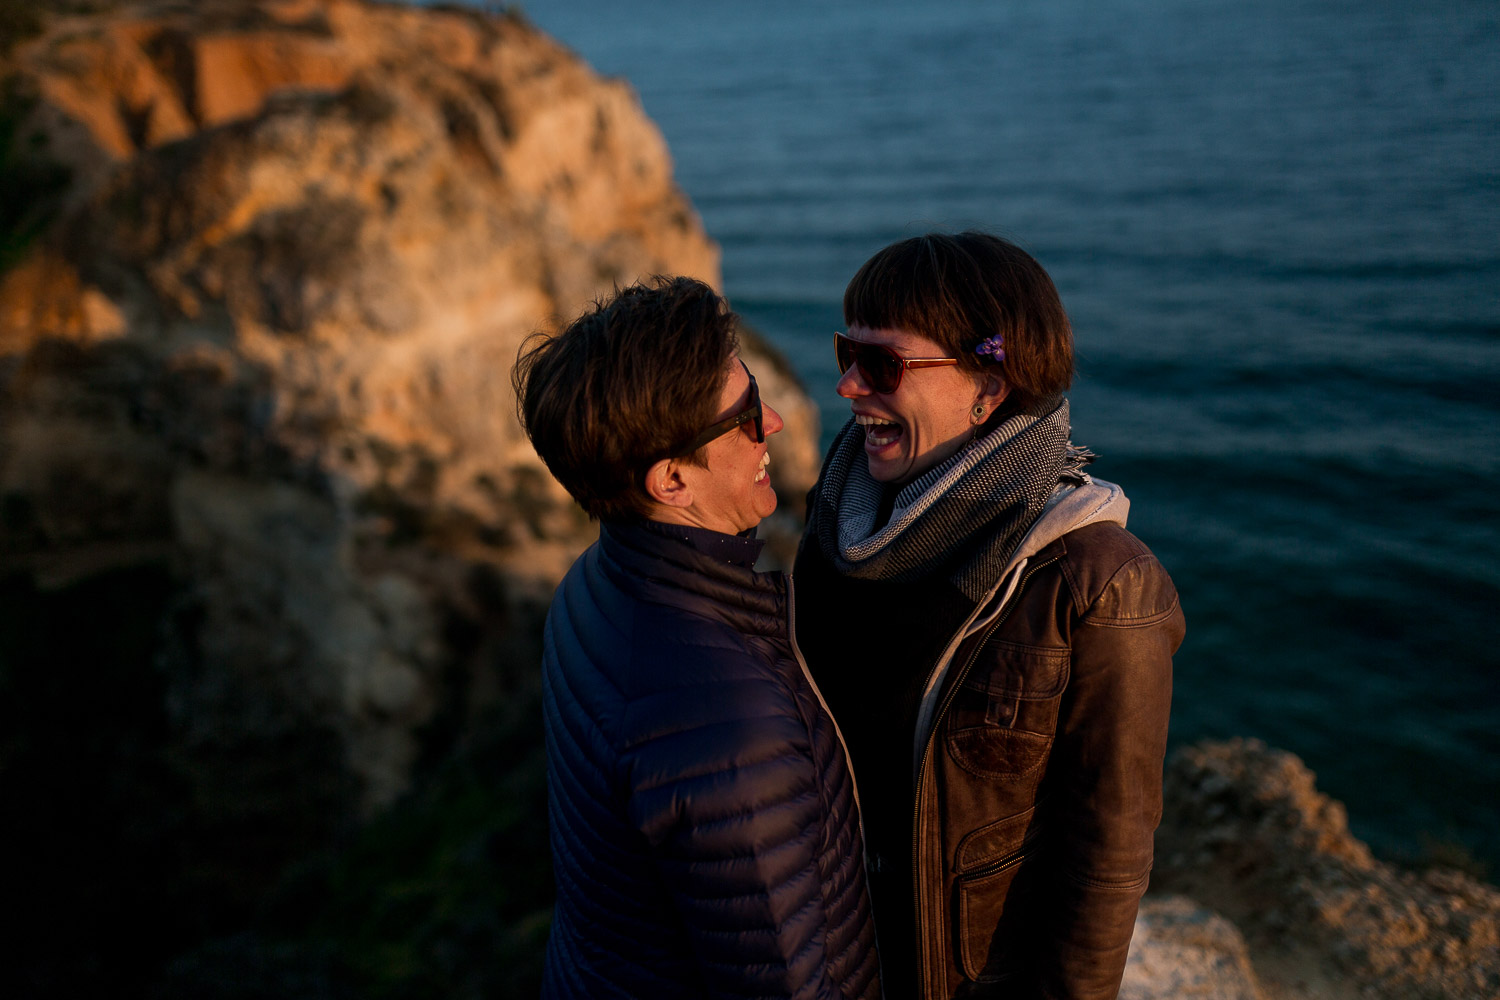 algarve wedding photographer, gay wedding algarve, lesbian wedding, LGBT wedding algarve, emma jervis photography,